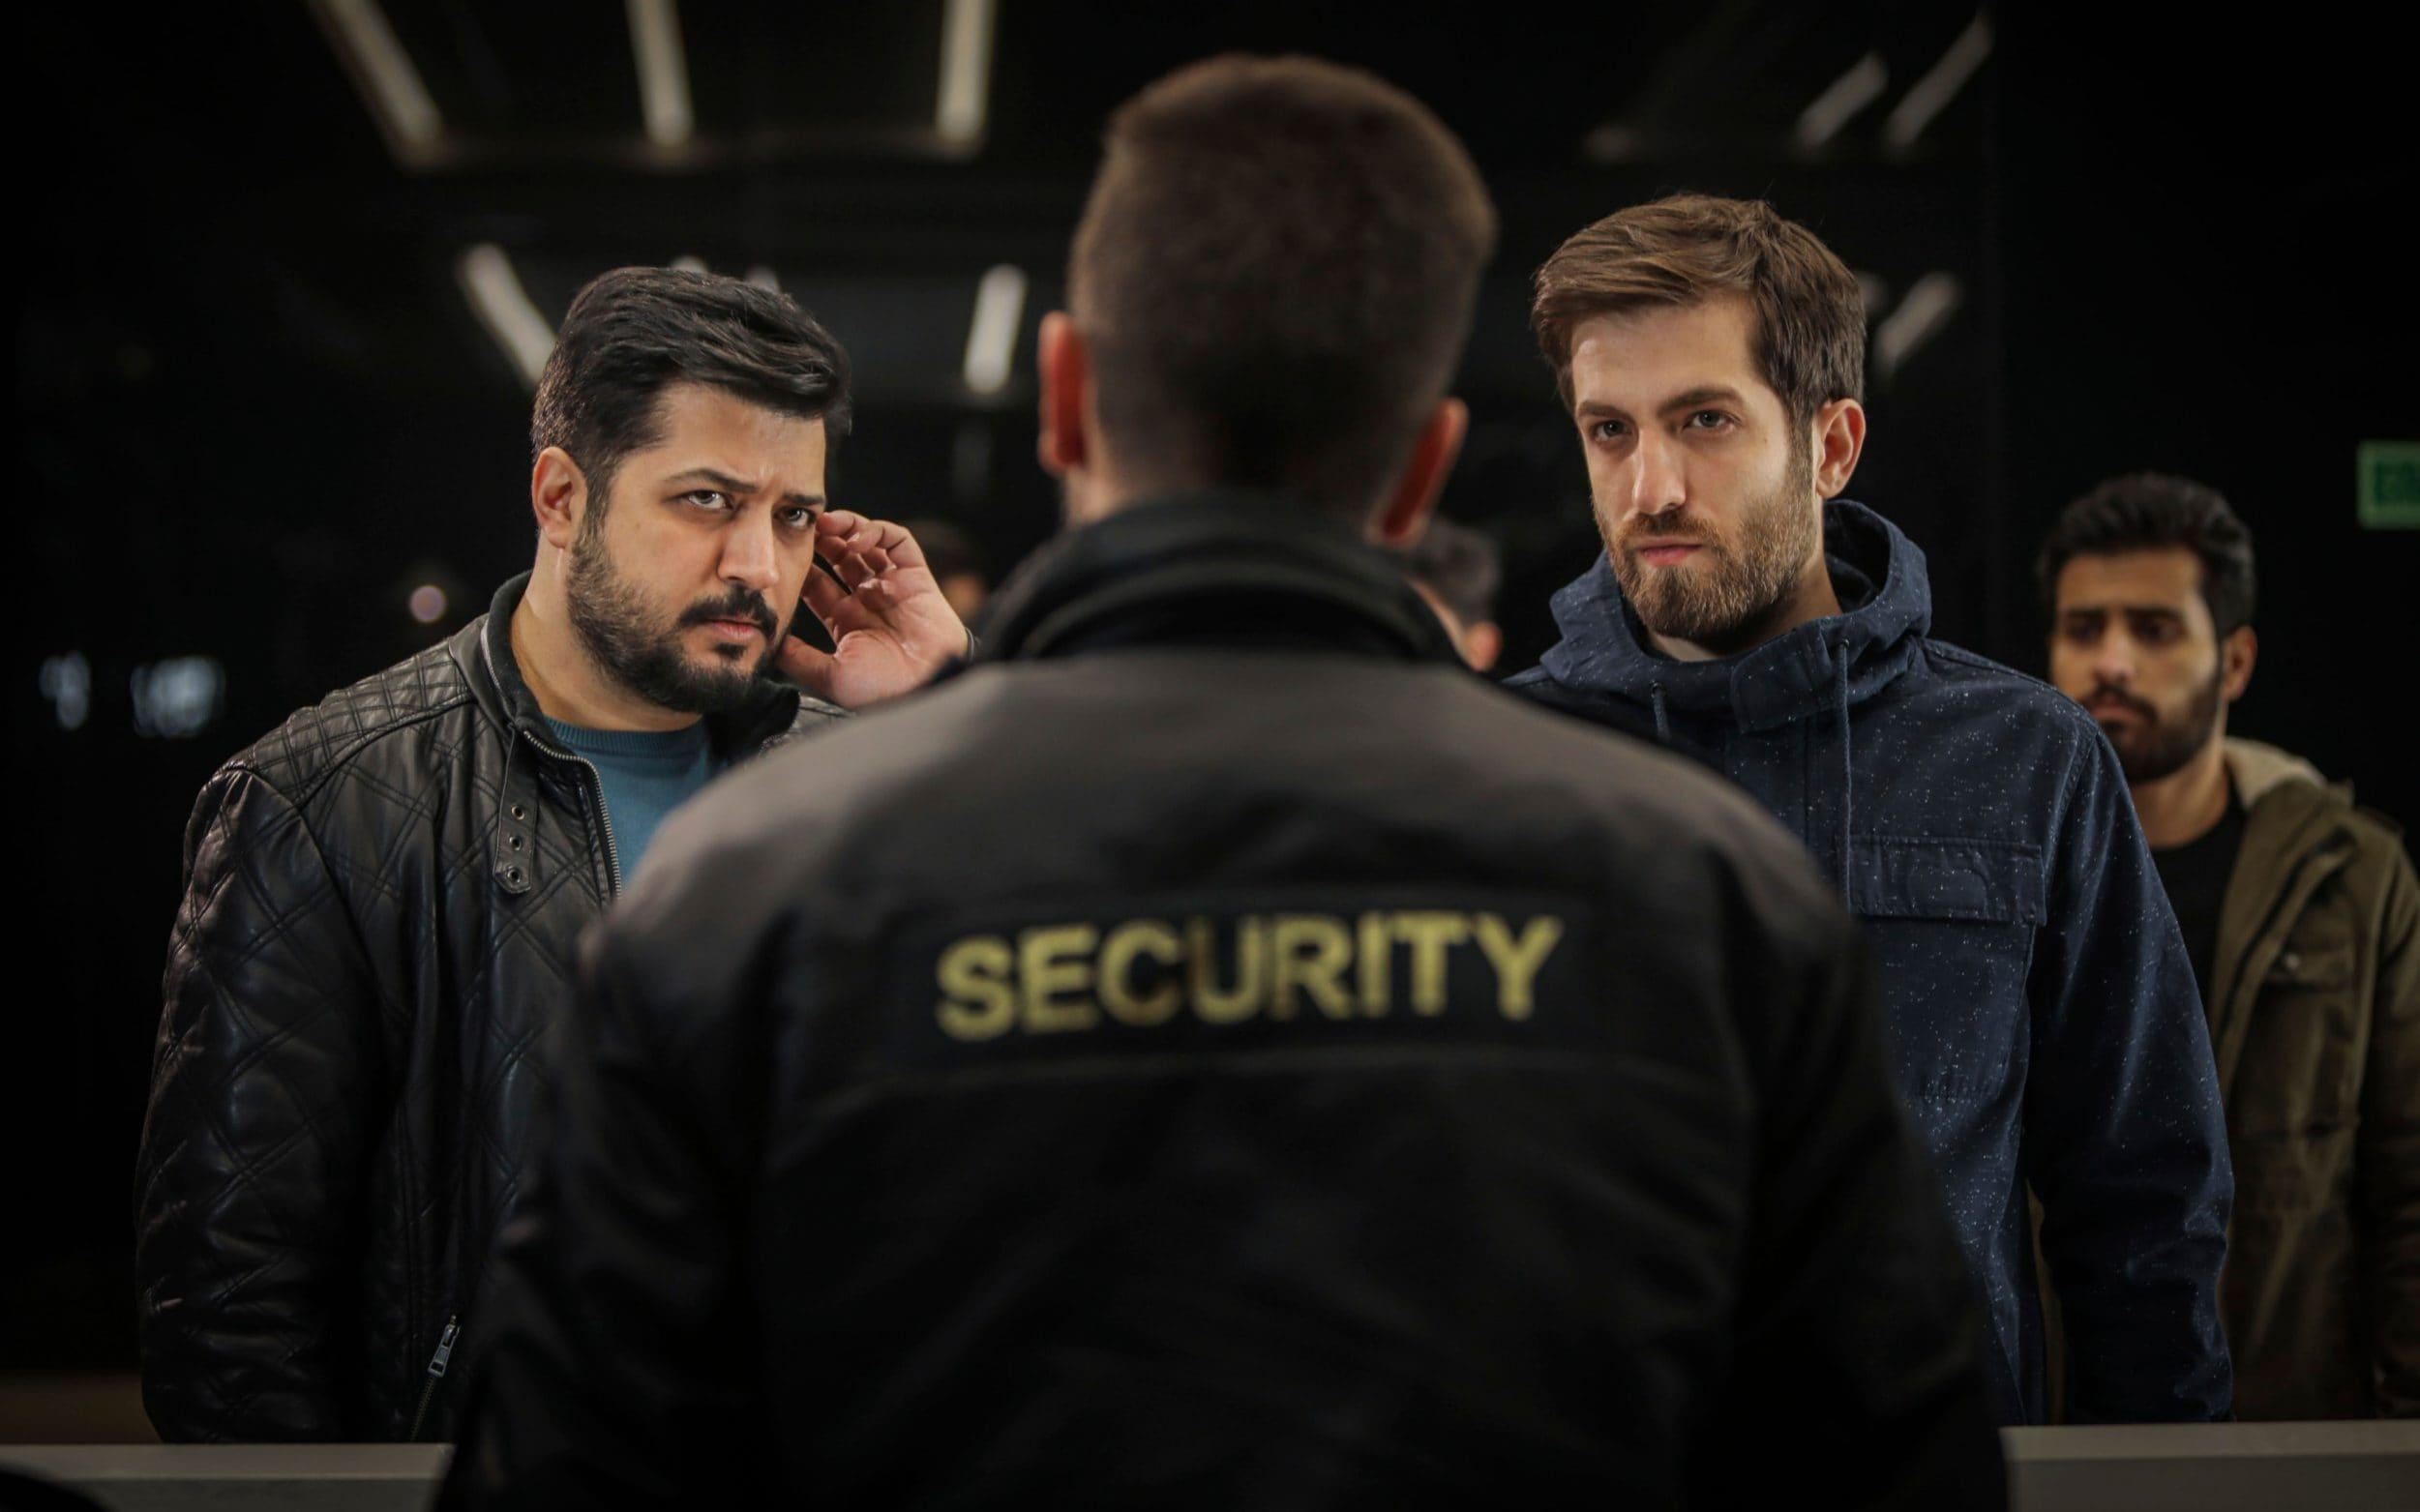 Iran's hit spy thriller is first shot in election culture war